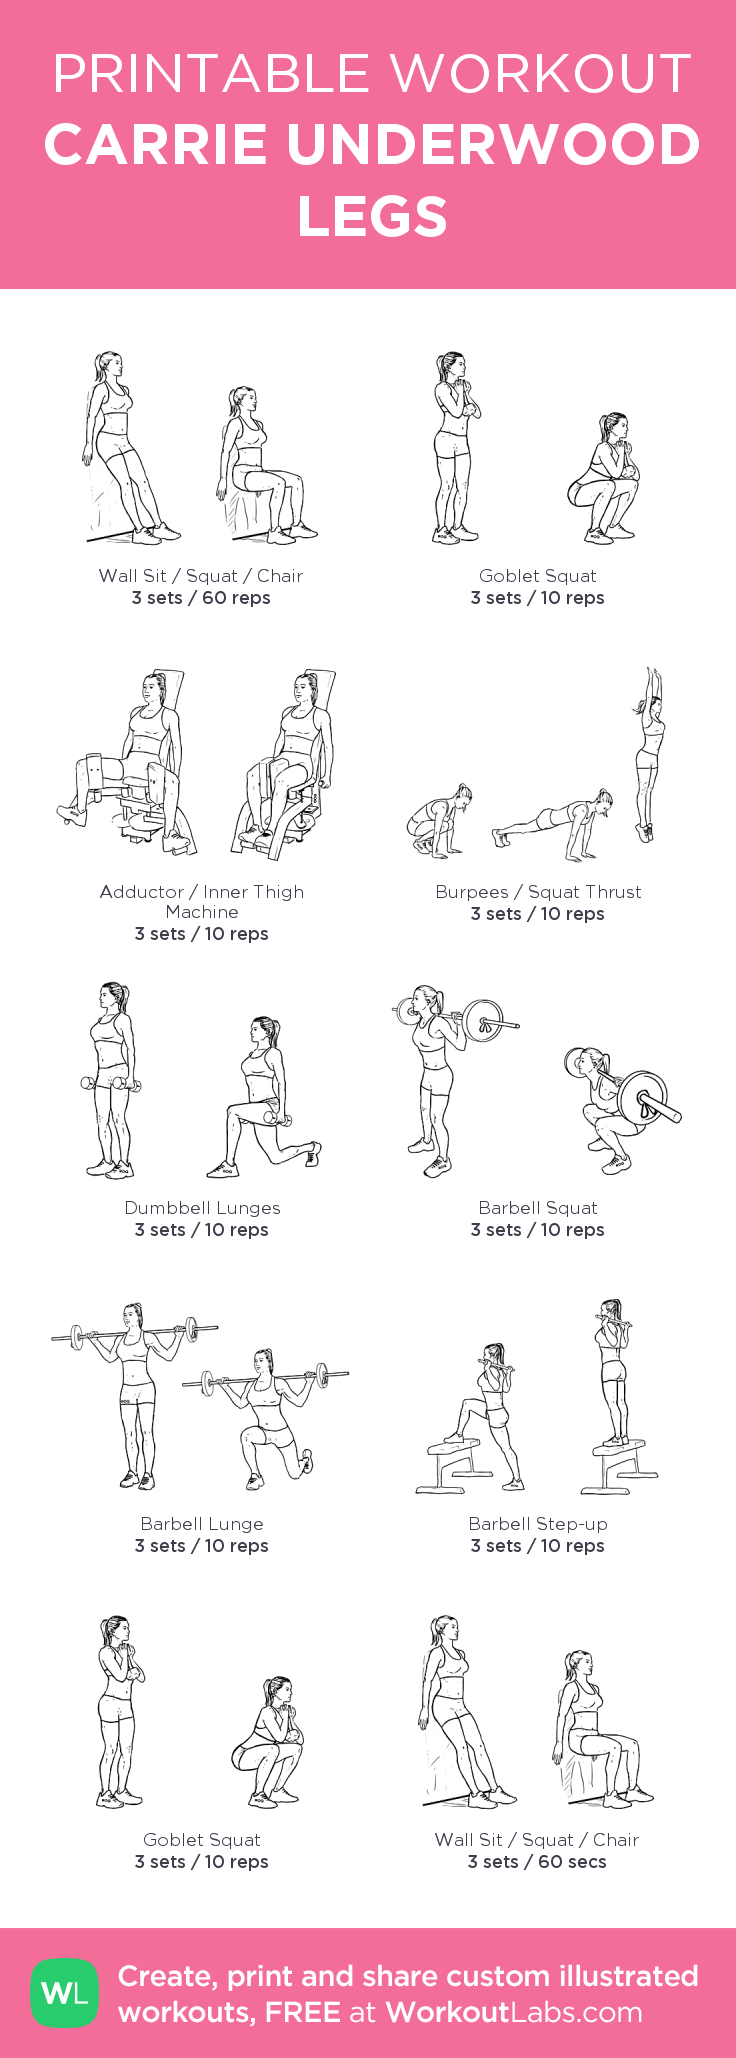 CARRIE UNDERWOOD LEGS:my visual workout created at WorkoutLabs.com • Click through to customize and download as a FREE PDF!